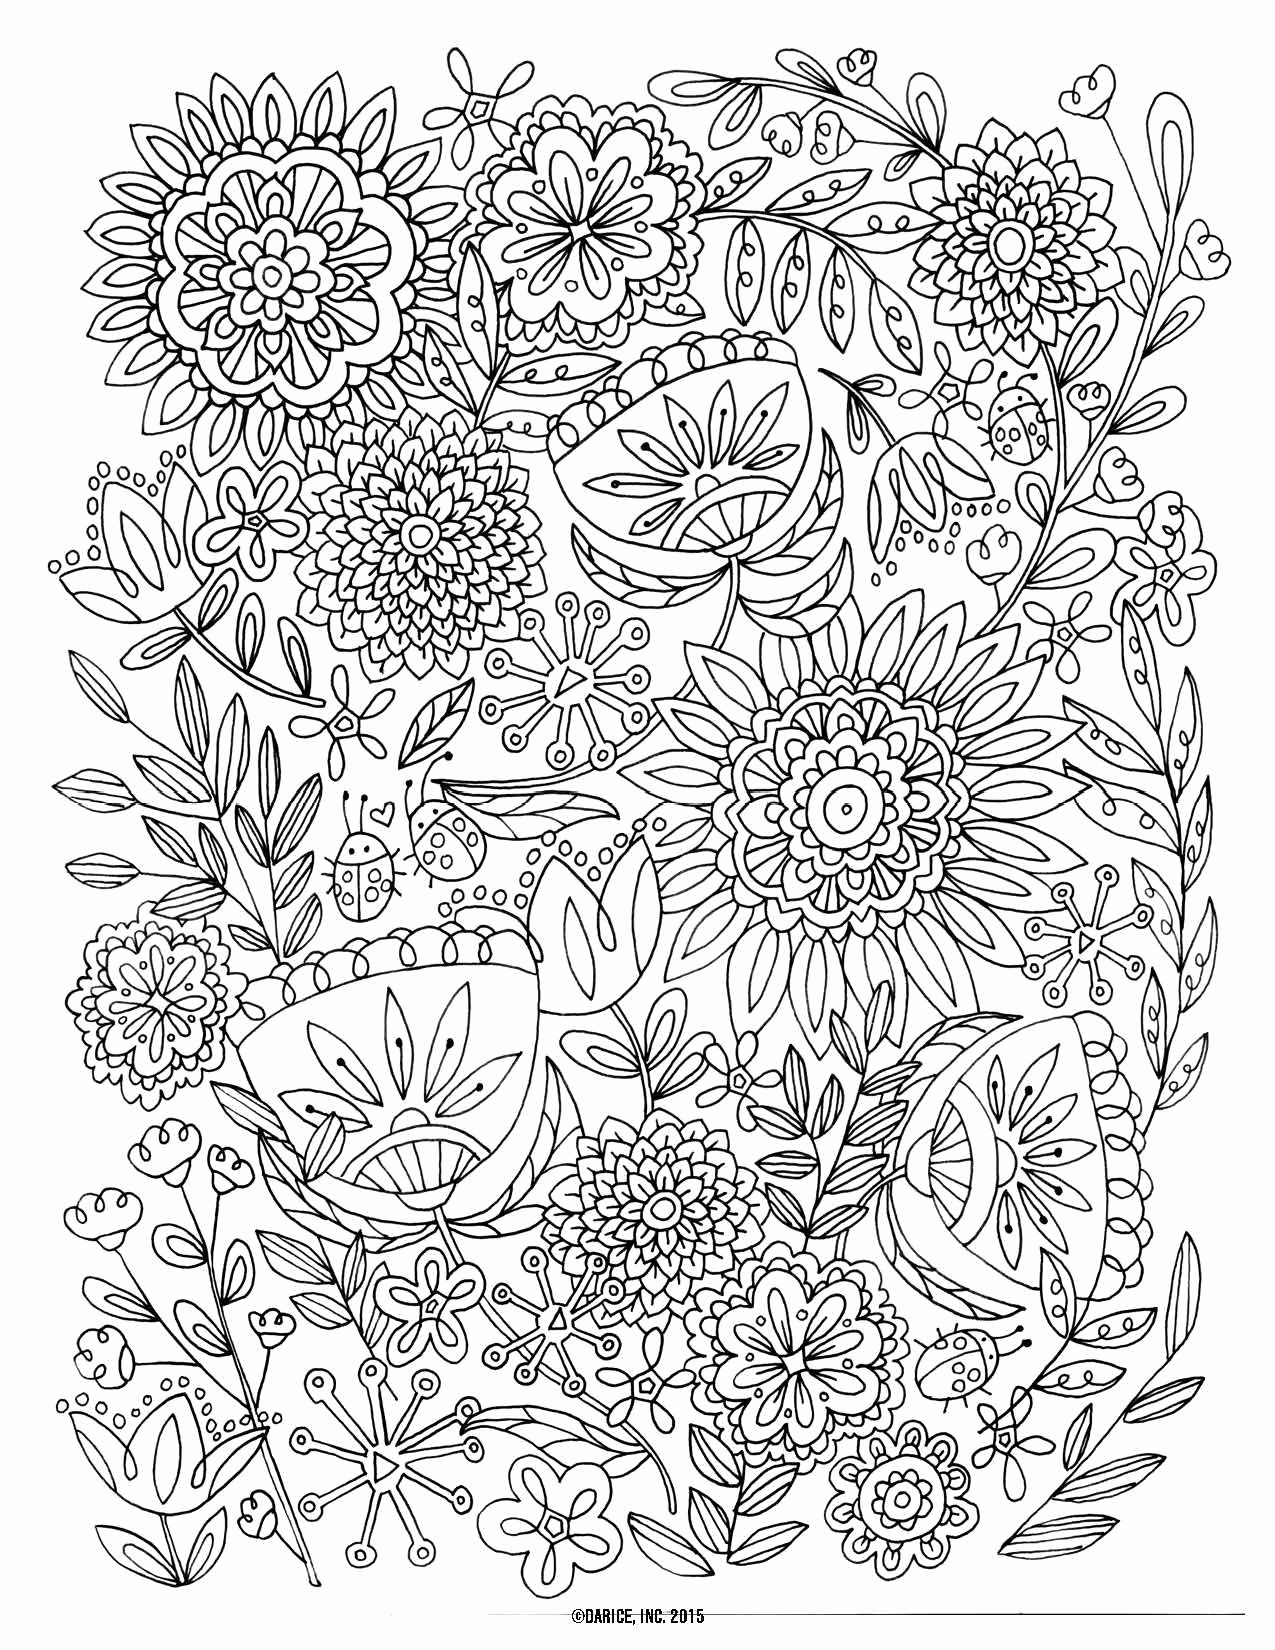 coloring pages games Download-Free Pirate Coloring Pages Beautiful Awesome Coloring Pages Games Lovely Coloring Book 0d Modokom – Fun 8-m